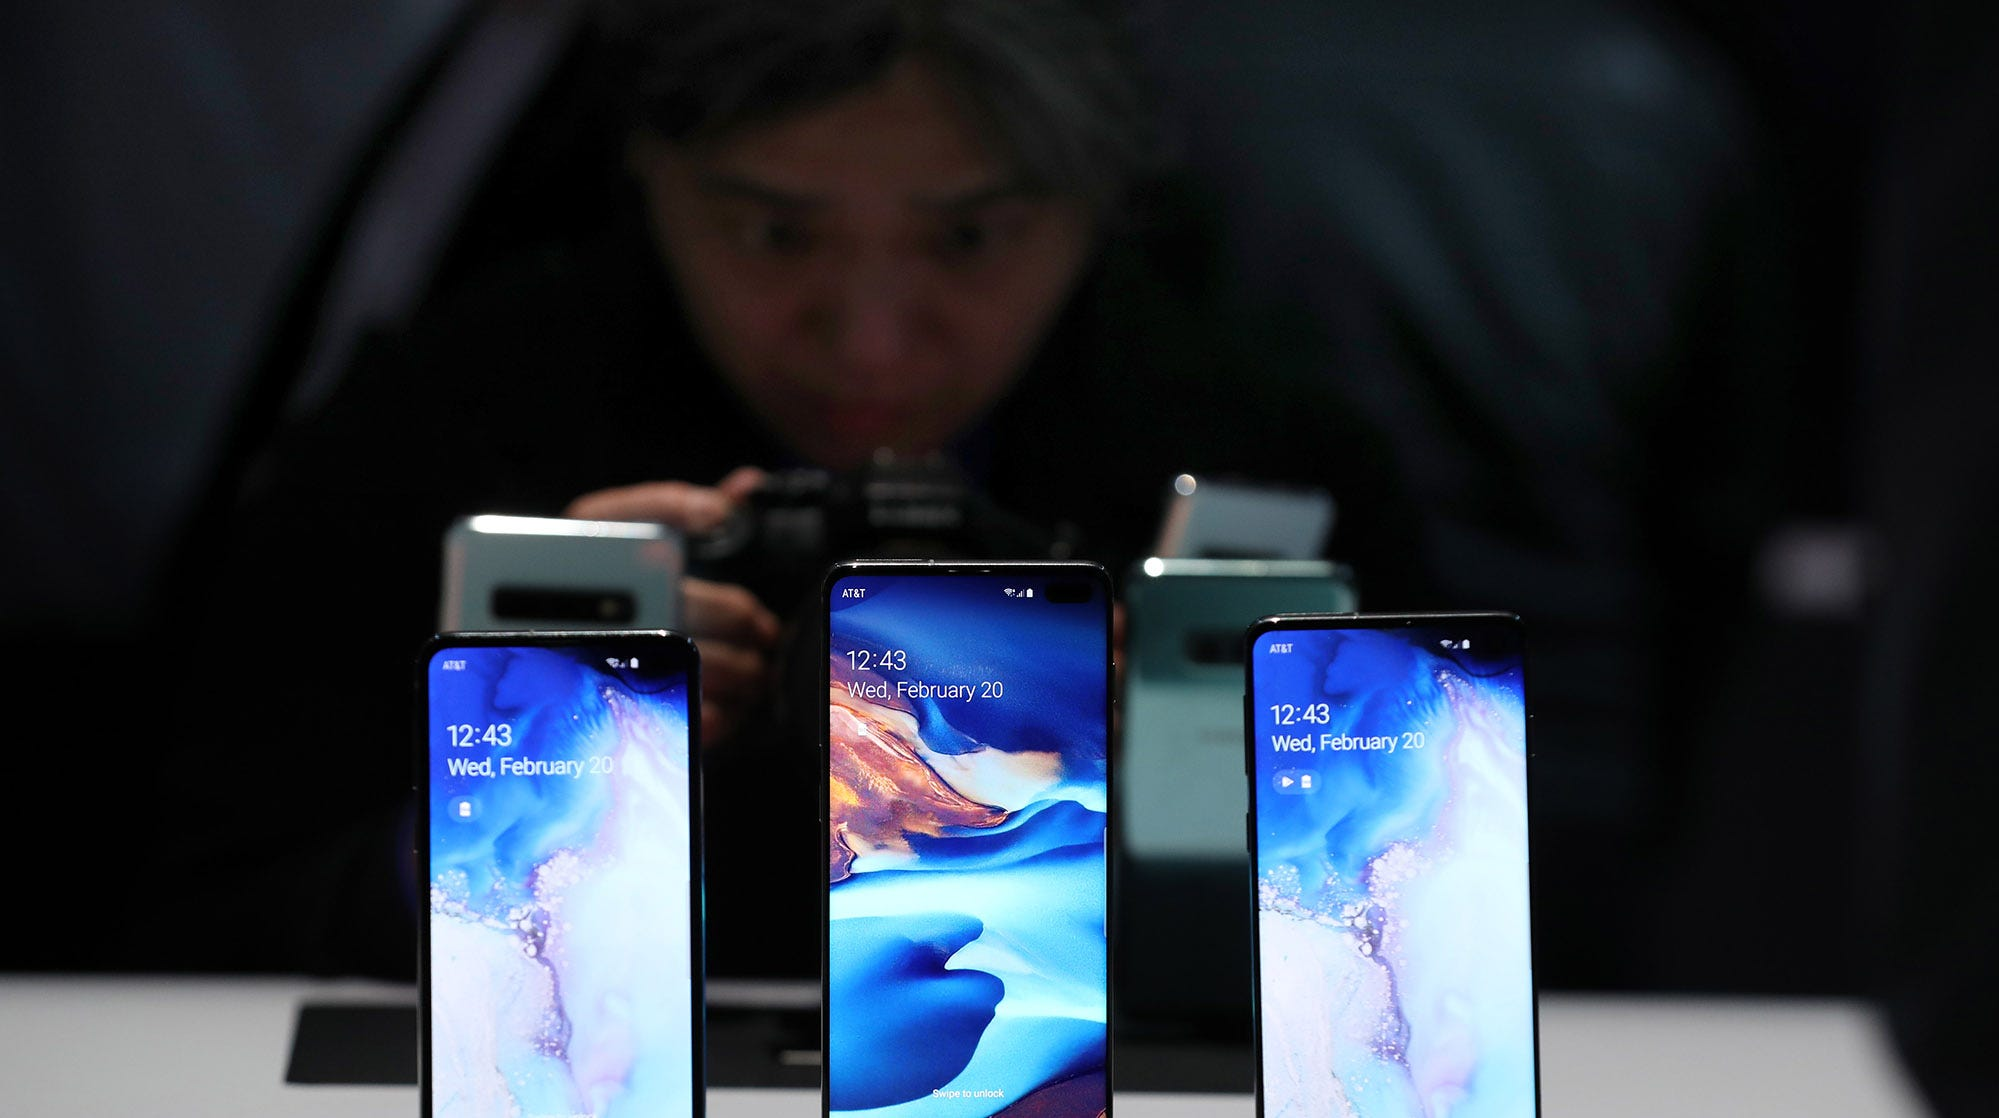 Galaxy S10: A look at the Galaxy S line through the years